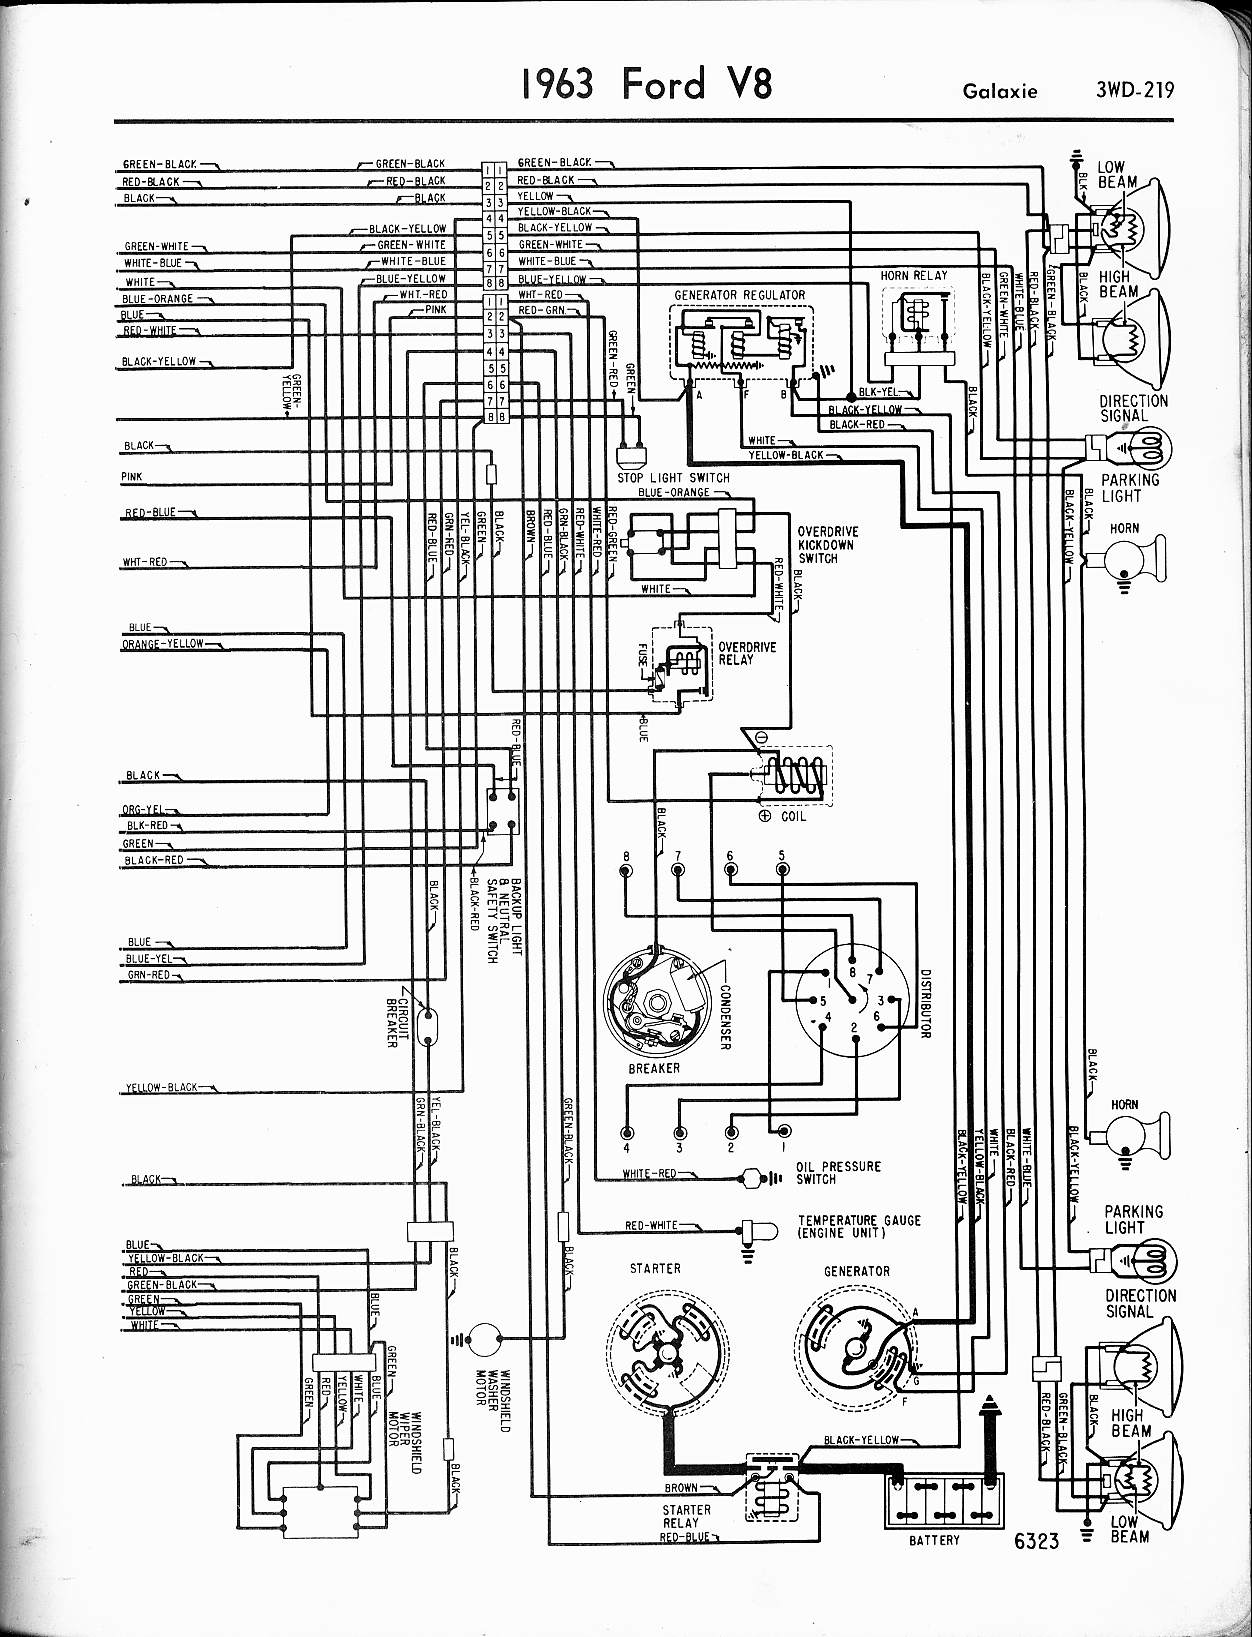 Wiring Diagram For 64 Galaxie 64 Galaxie Ford Wiring